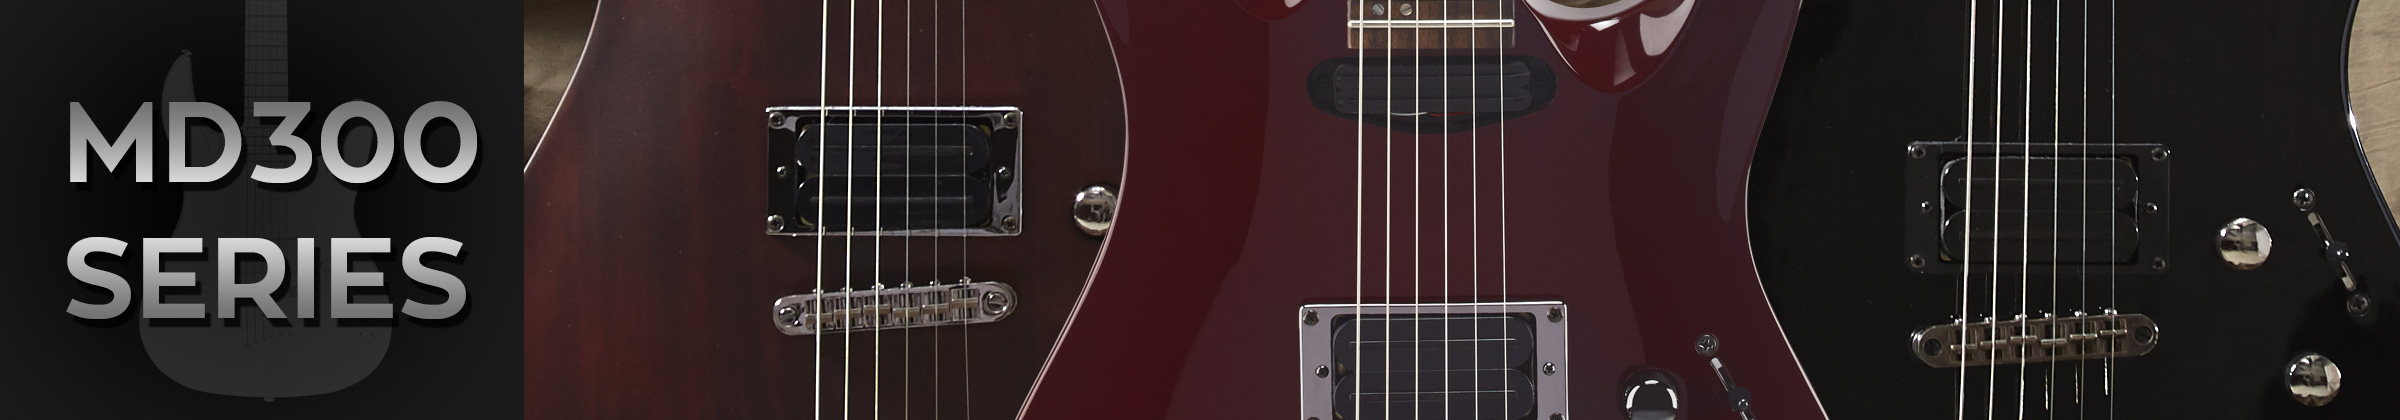 MD300 Mitchell Electric Guitars